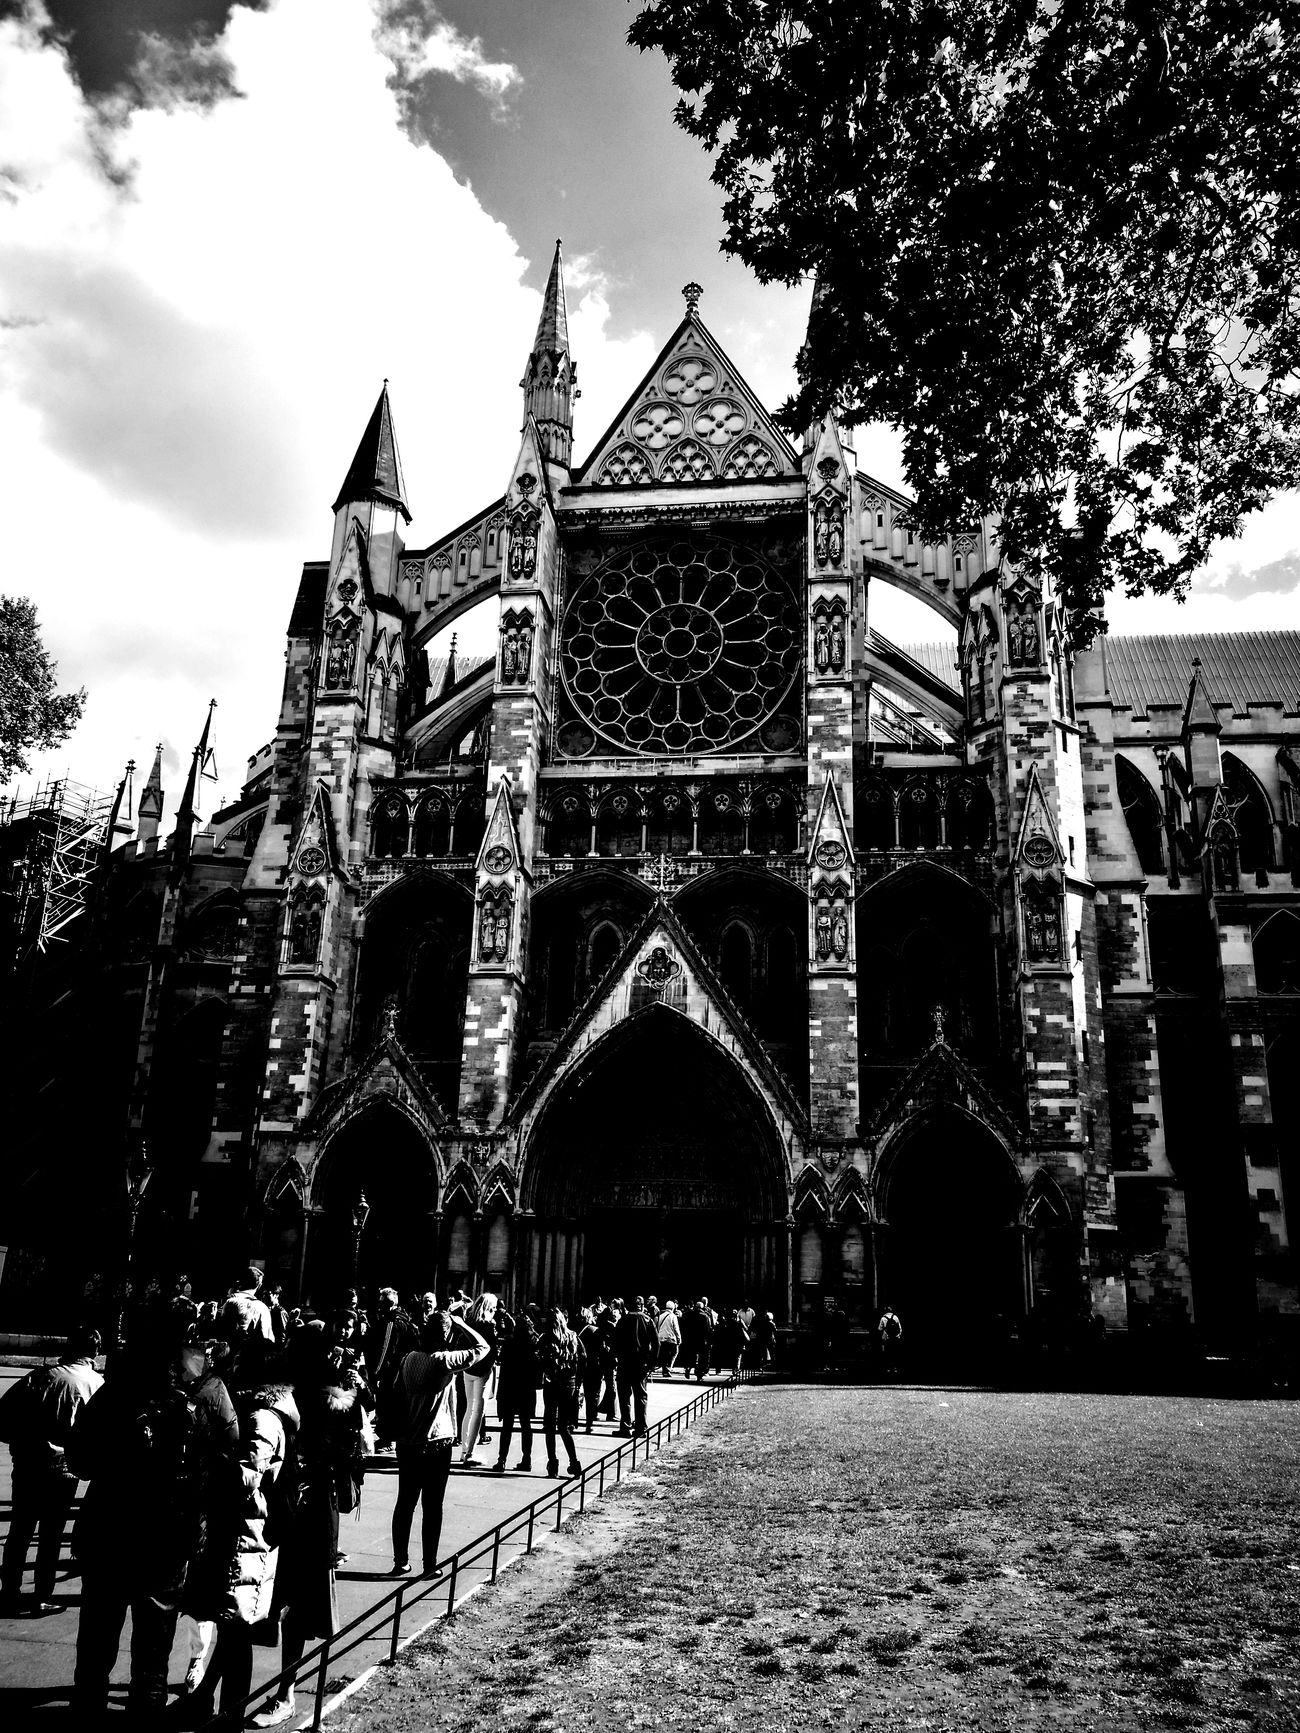 Architecture Building Exterior Built Structure London London Lifestyle Church Architecture Westminster Abbey Westminsterabbey Westminster Travel Destinations Snapshots_daily Photography Photography Snapshot Photooftheday First Eyeem Photo PhonePhotography Snapshots_daily Mobilephotography Blackandwhite Photography